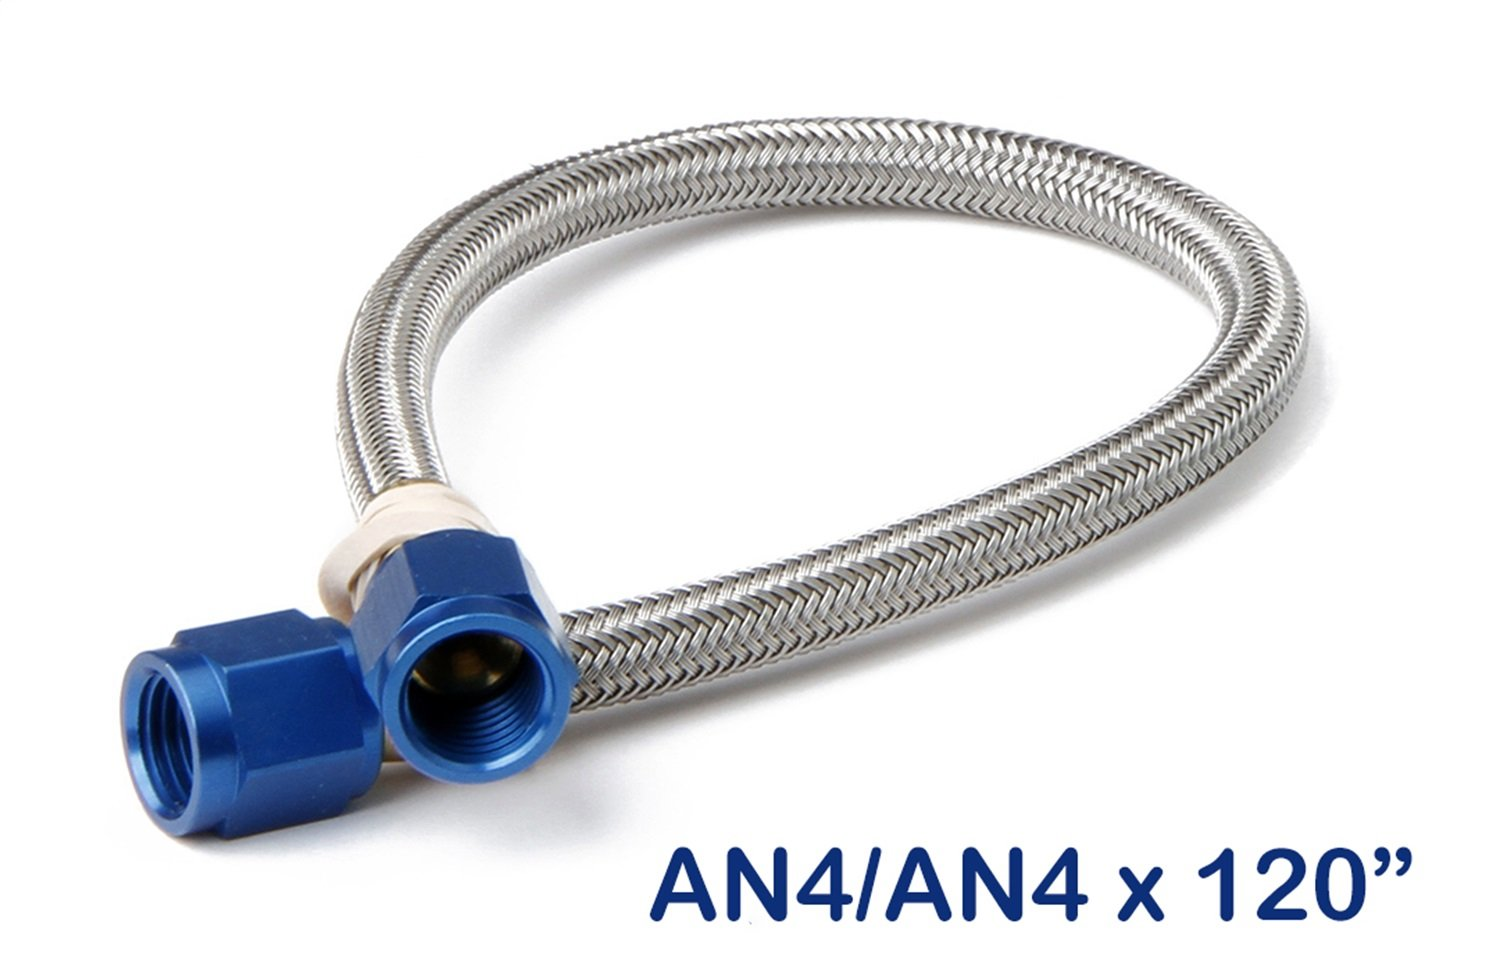 NOS 15280NOS Stainless Steel 4AN Braided Hose 10 Feet NOS//Nitrous Oxide System